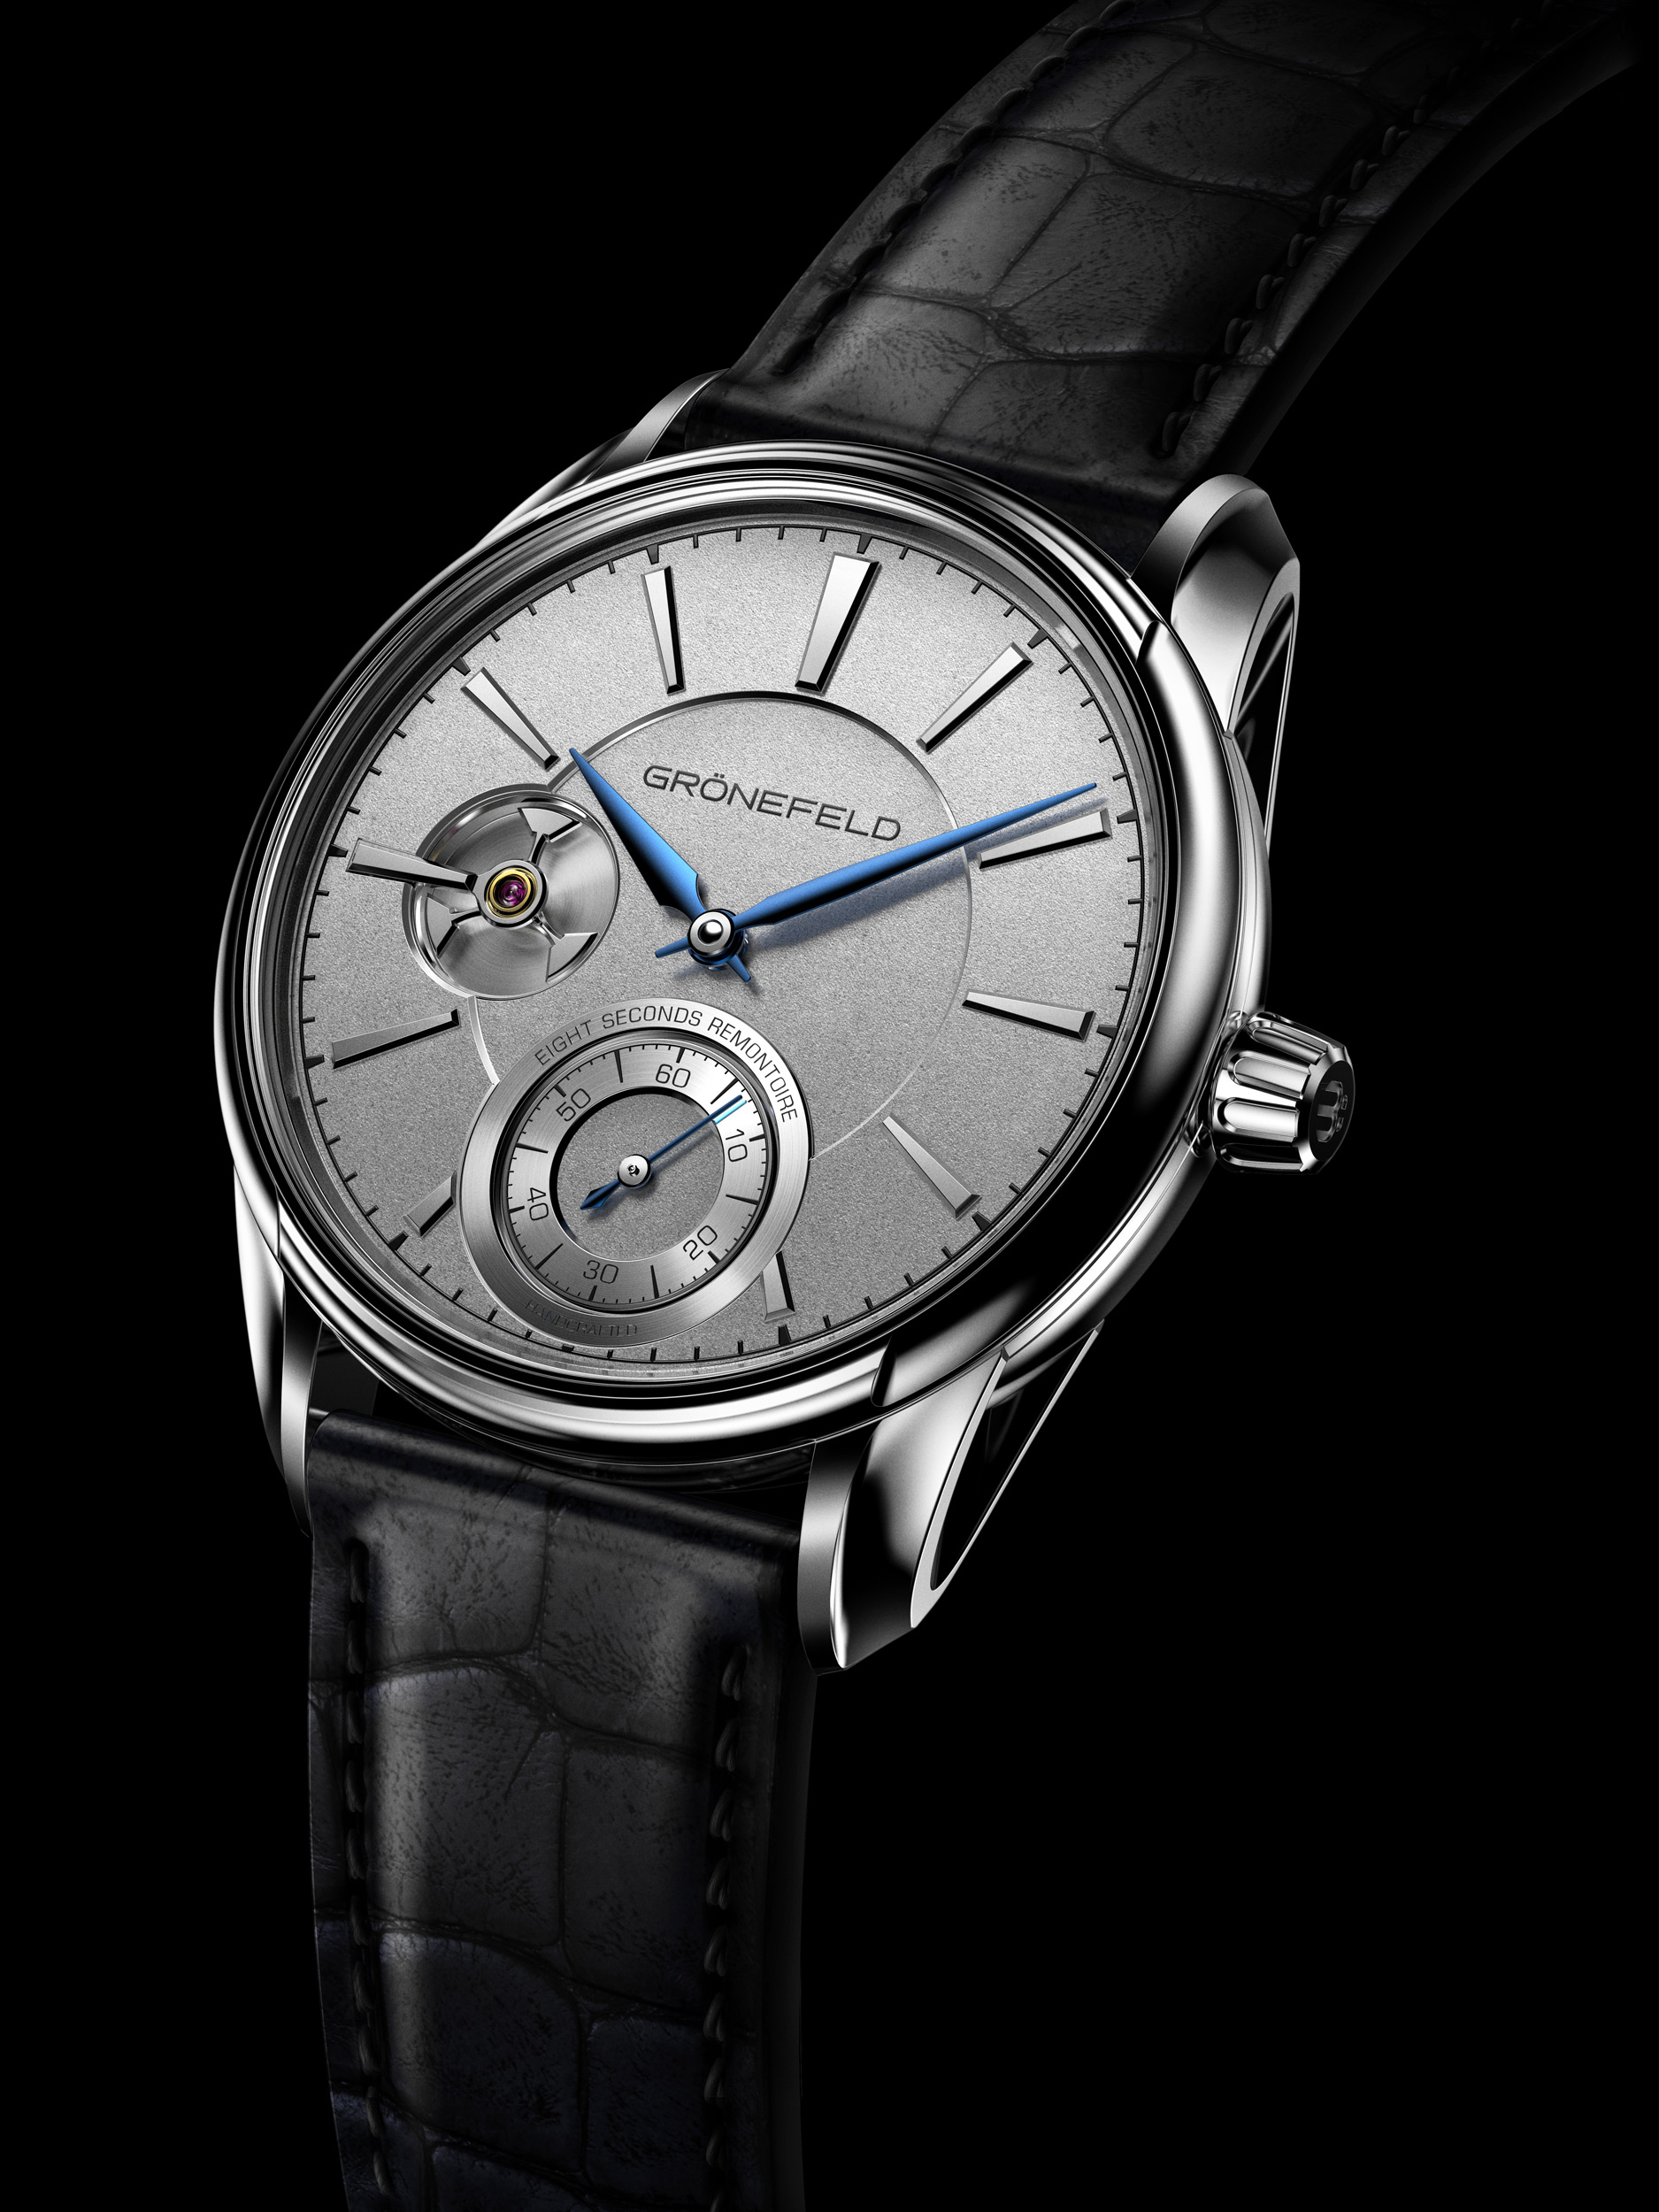 The case of the 1941 Remontoire is perfectly shaped and has a timeless design. Grönefeld©